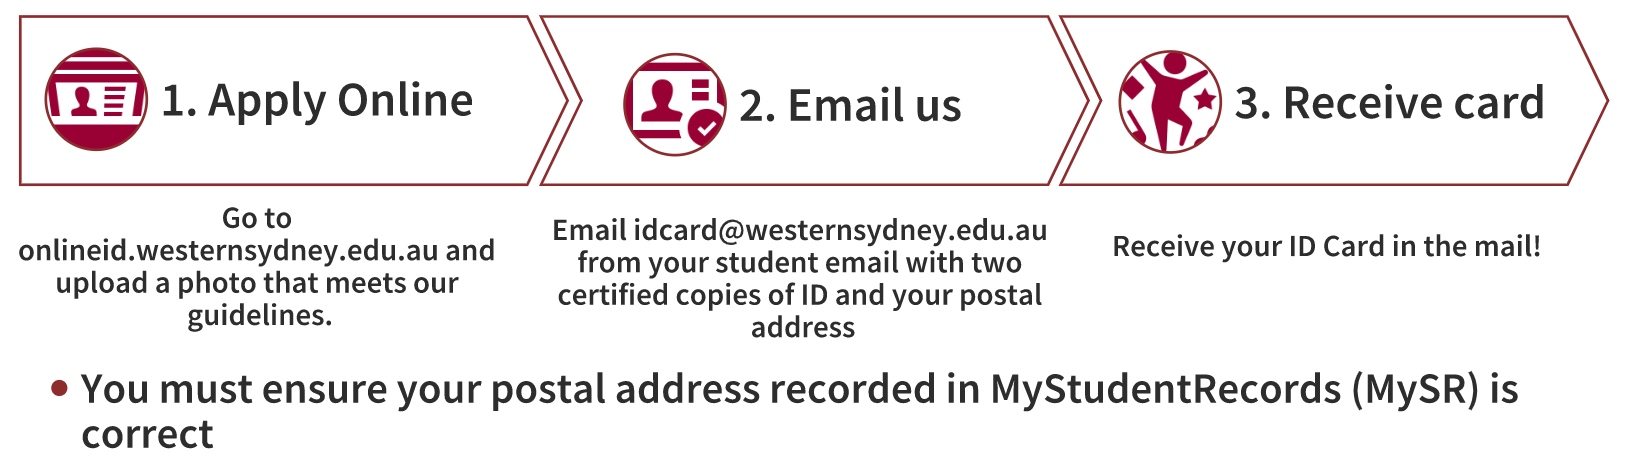 Click the apply button to request a new student ID Card and email us your Photo ID